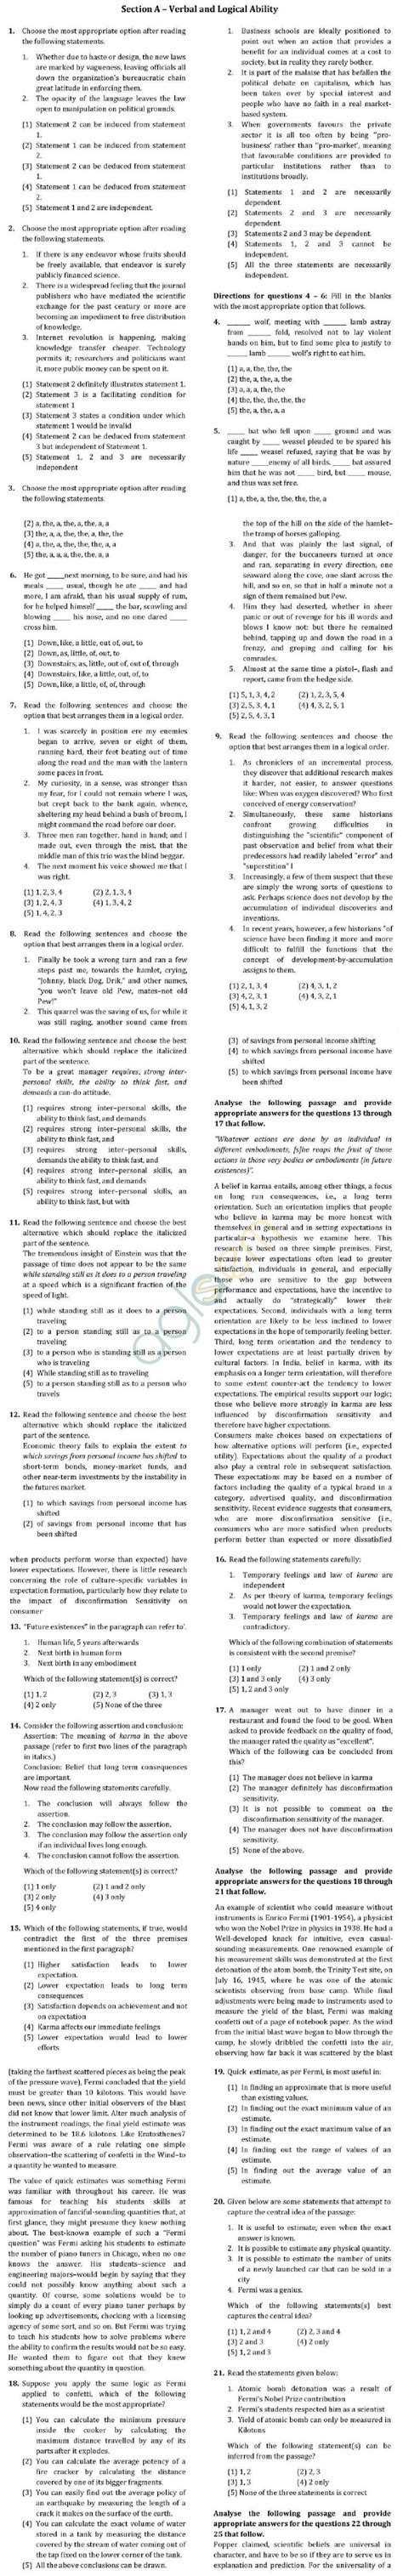 xat question pattern 2016 xat 2013 question paper with solutions aglasem admission